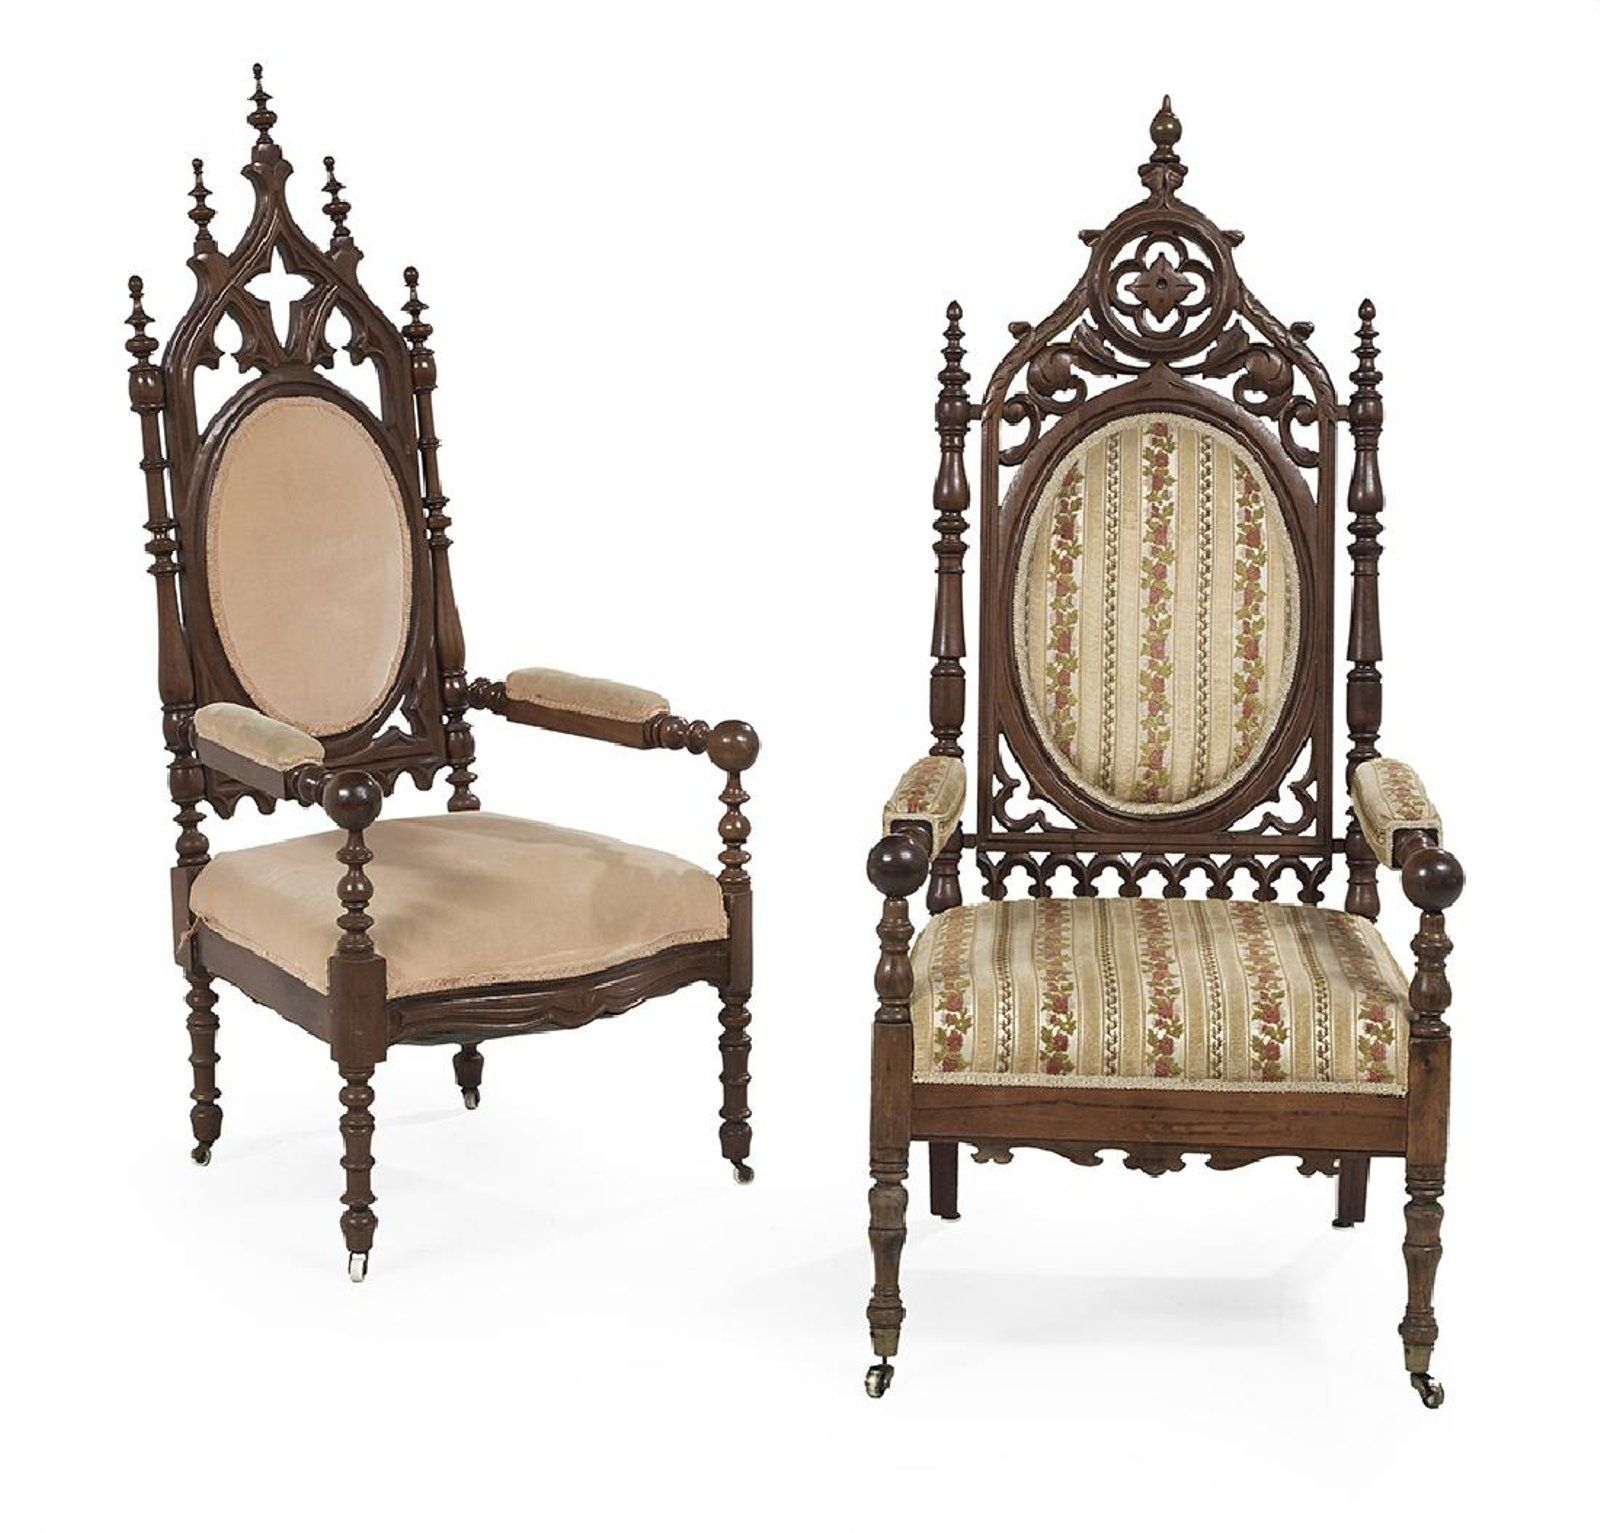 Two American Gothic Revival Walnut Armchairs mid 19th century